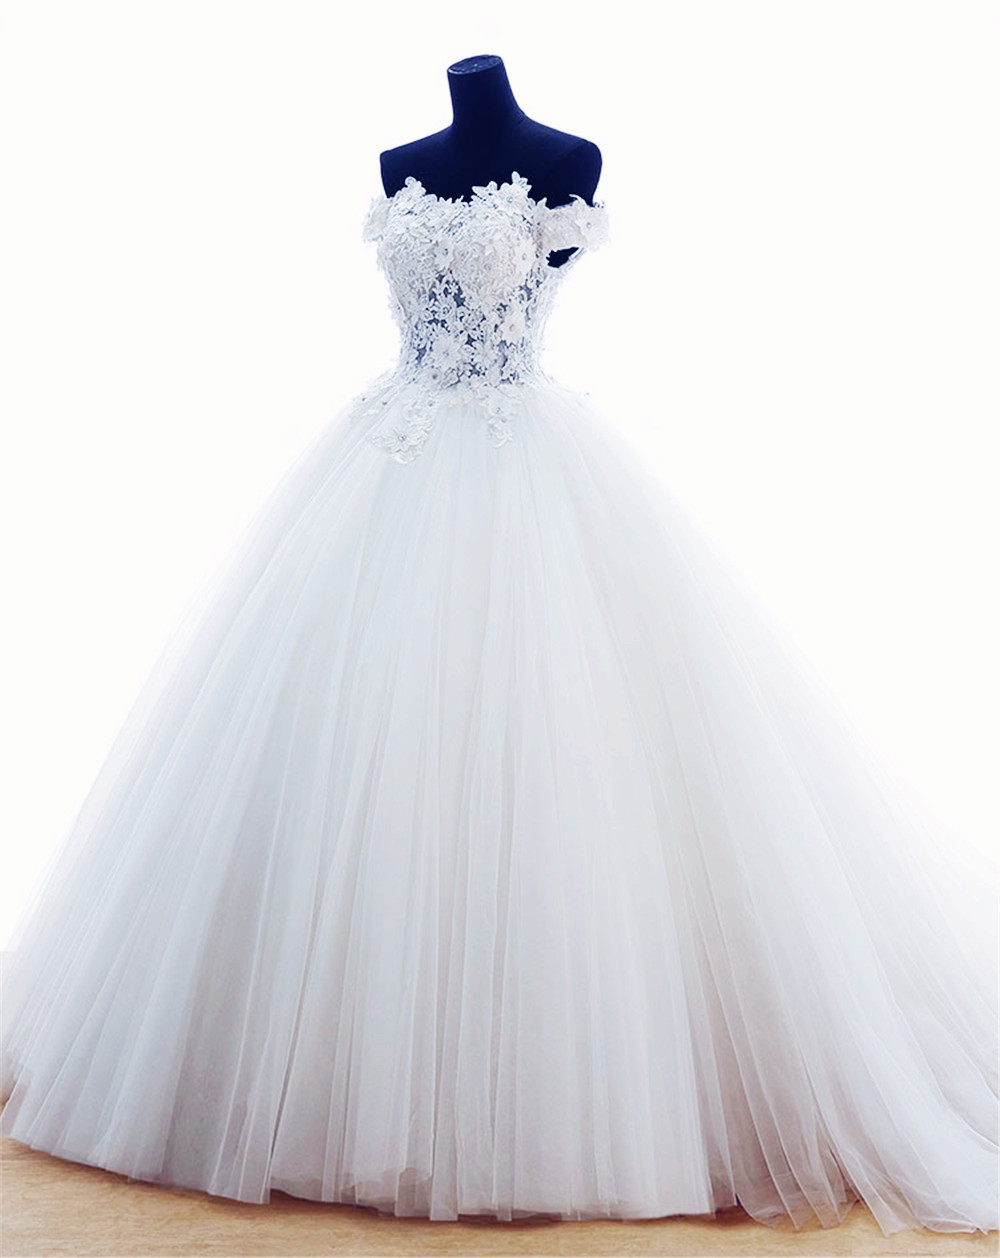 MANSA Luxury Ball Gown Wedding Dresses For Bride 2015 White Cap Sleeves Lace Appliques Tulle Wedding Dress Robe De Mariage